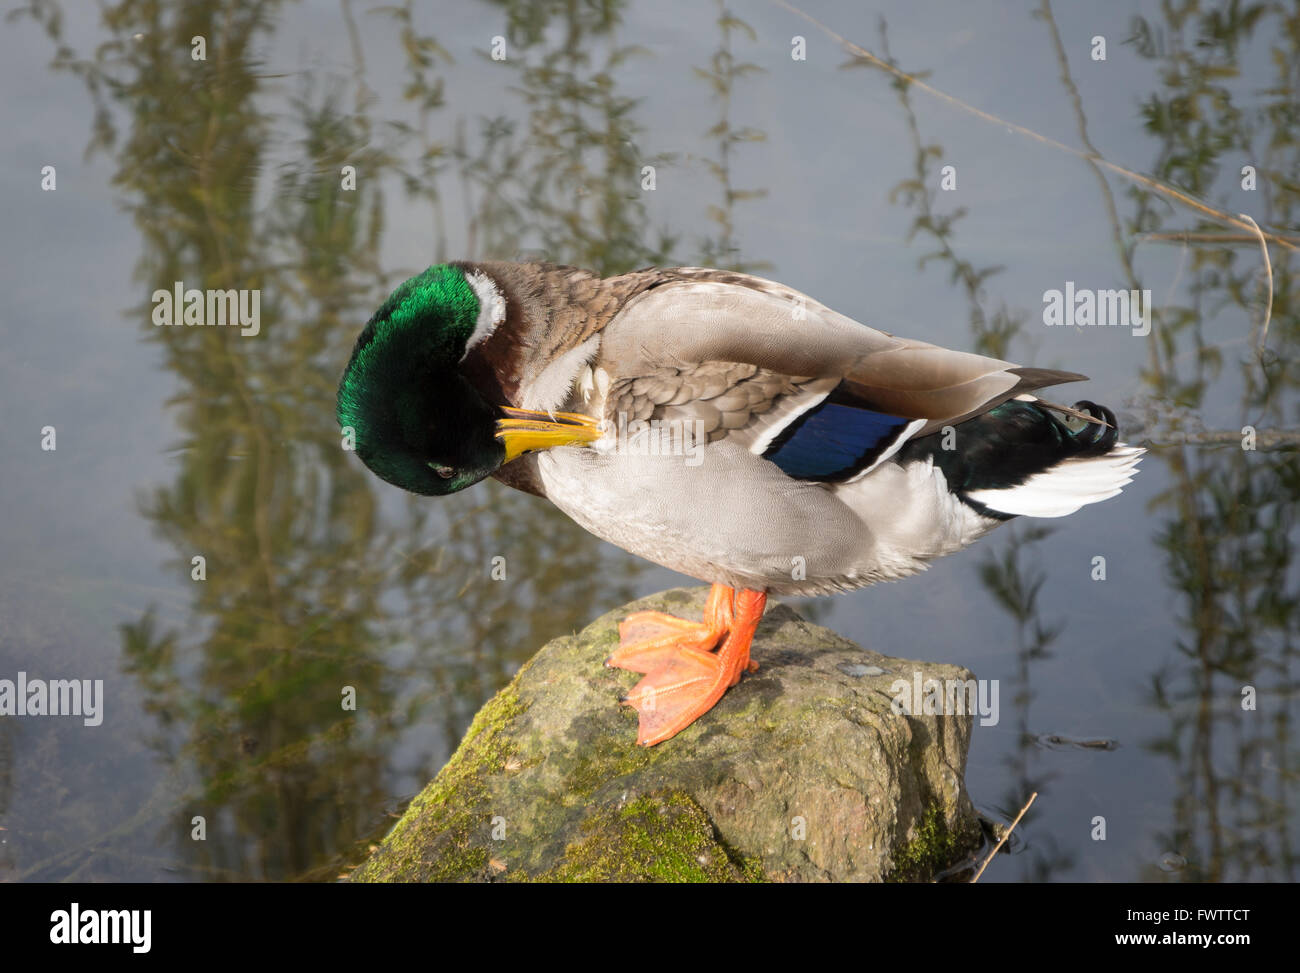 Male Mallard duck (Anas platyrhynchos) perched on a rock in a pond preening his feathers Stock Photo